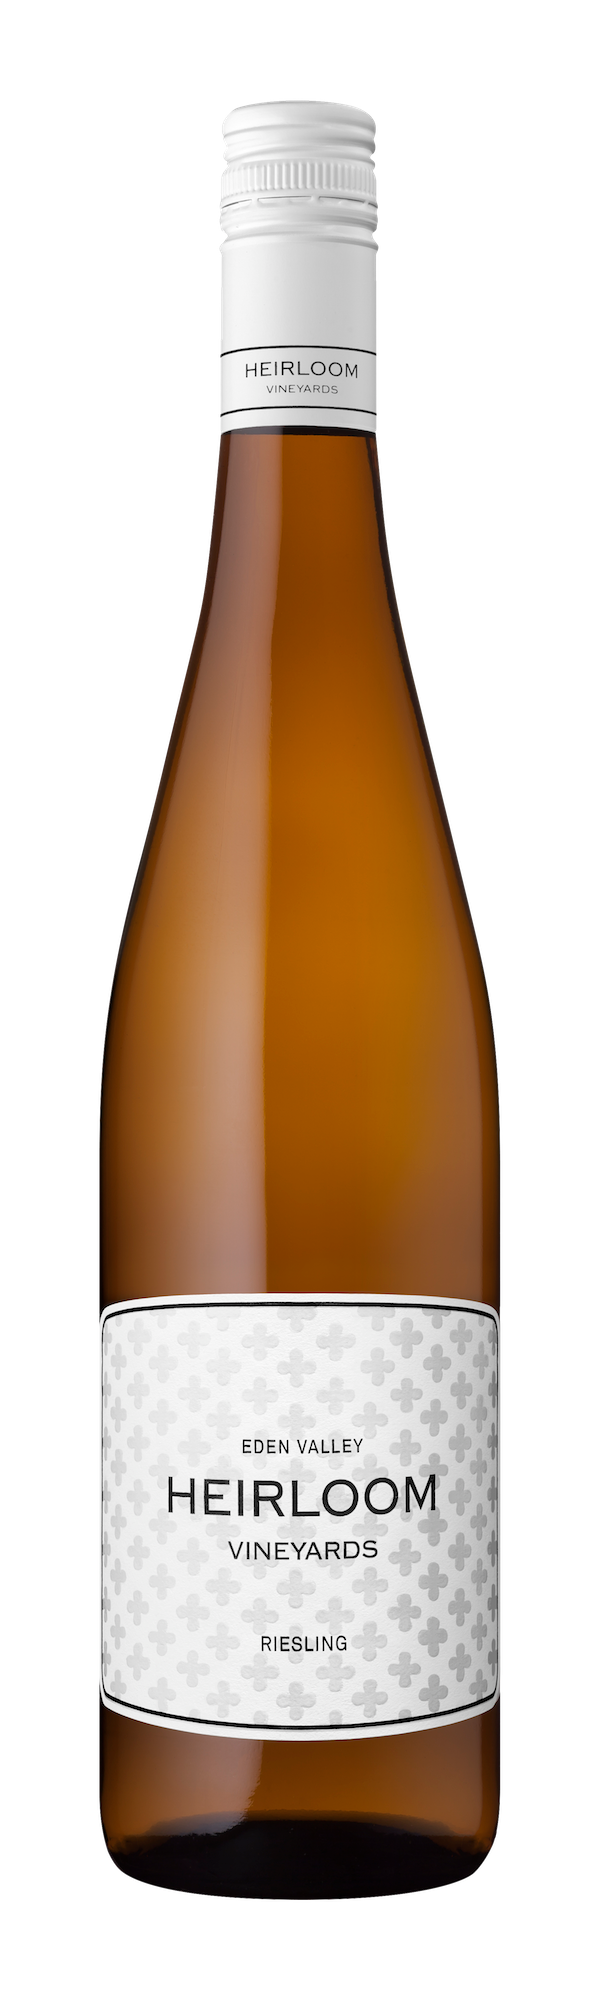 Eden Valley Riesling 2019